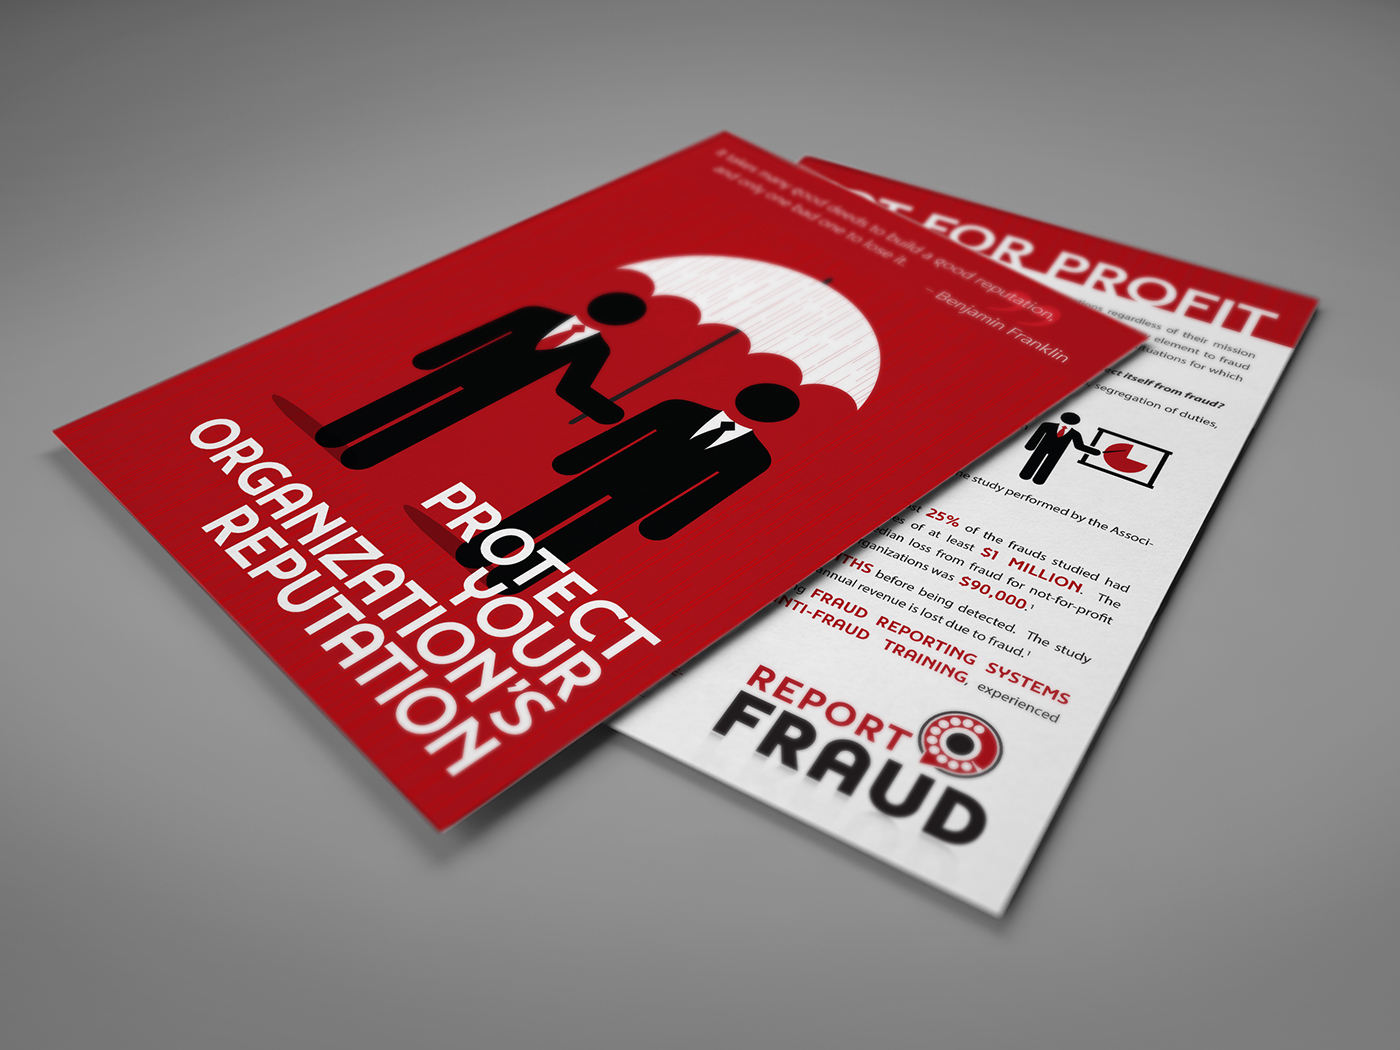 Report Fraud Not For Profit Sales Card On Behance